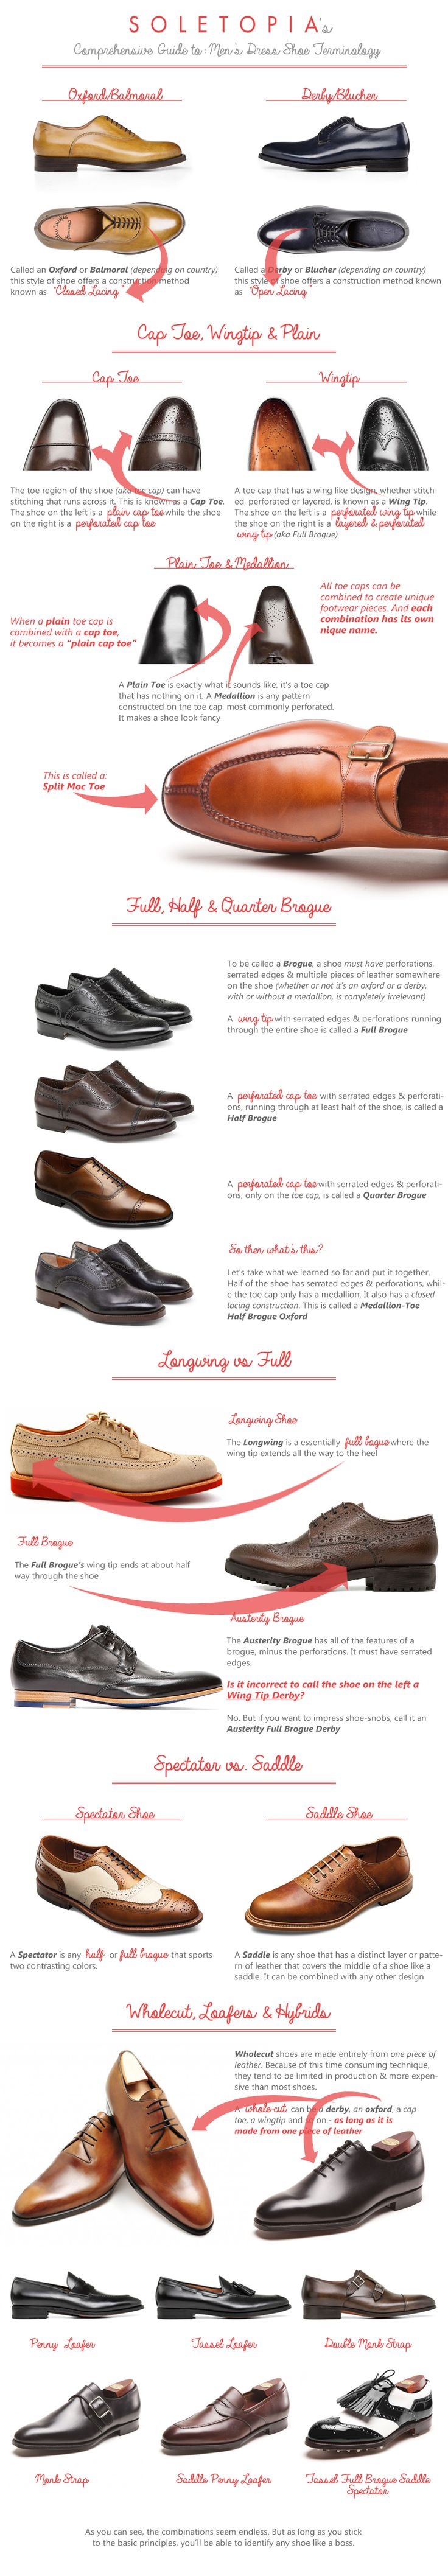 Everything you need to know about men's shoes!